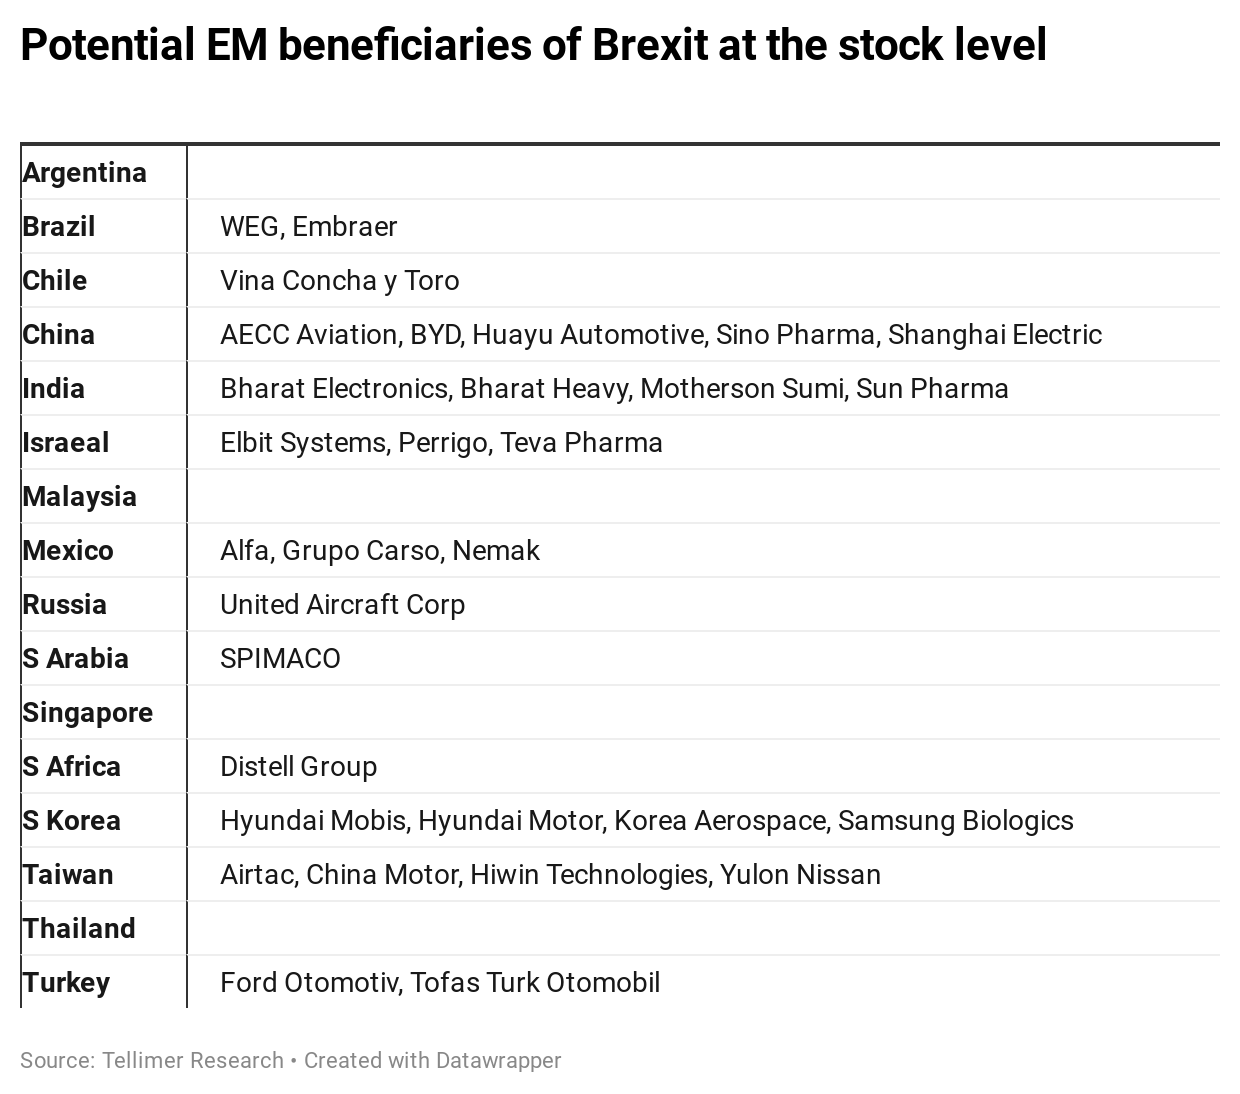 Potential EM beneficiaries of Brexit at the stock level